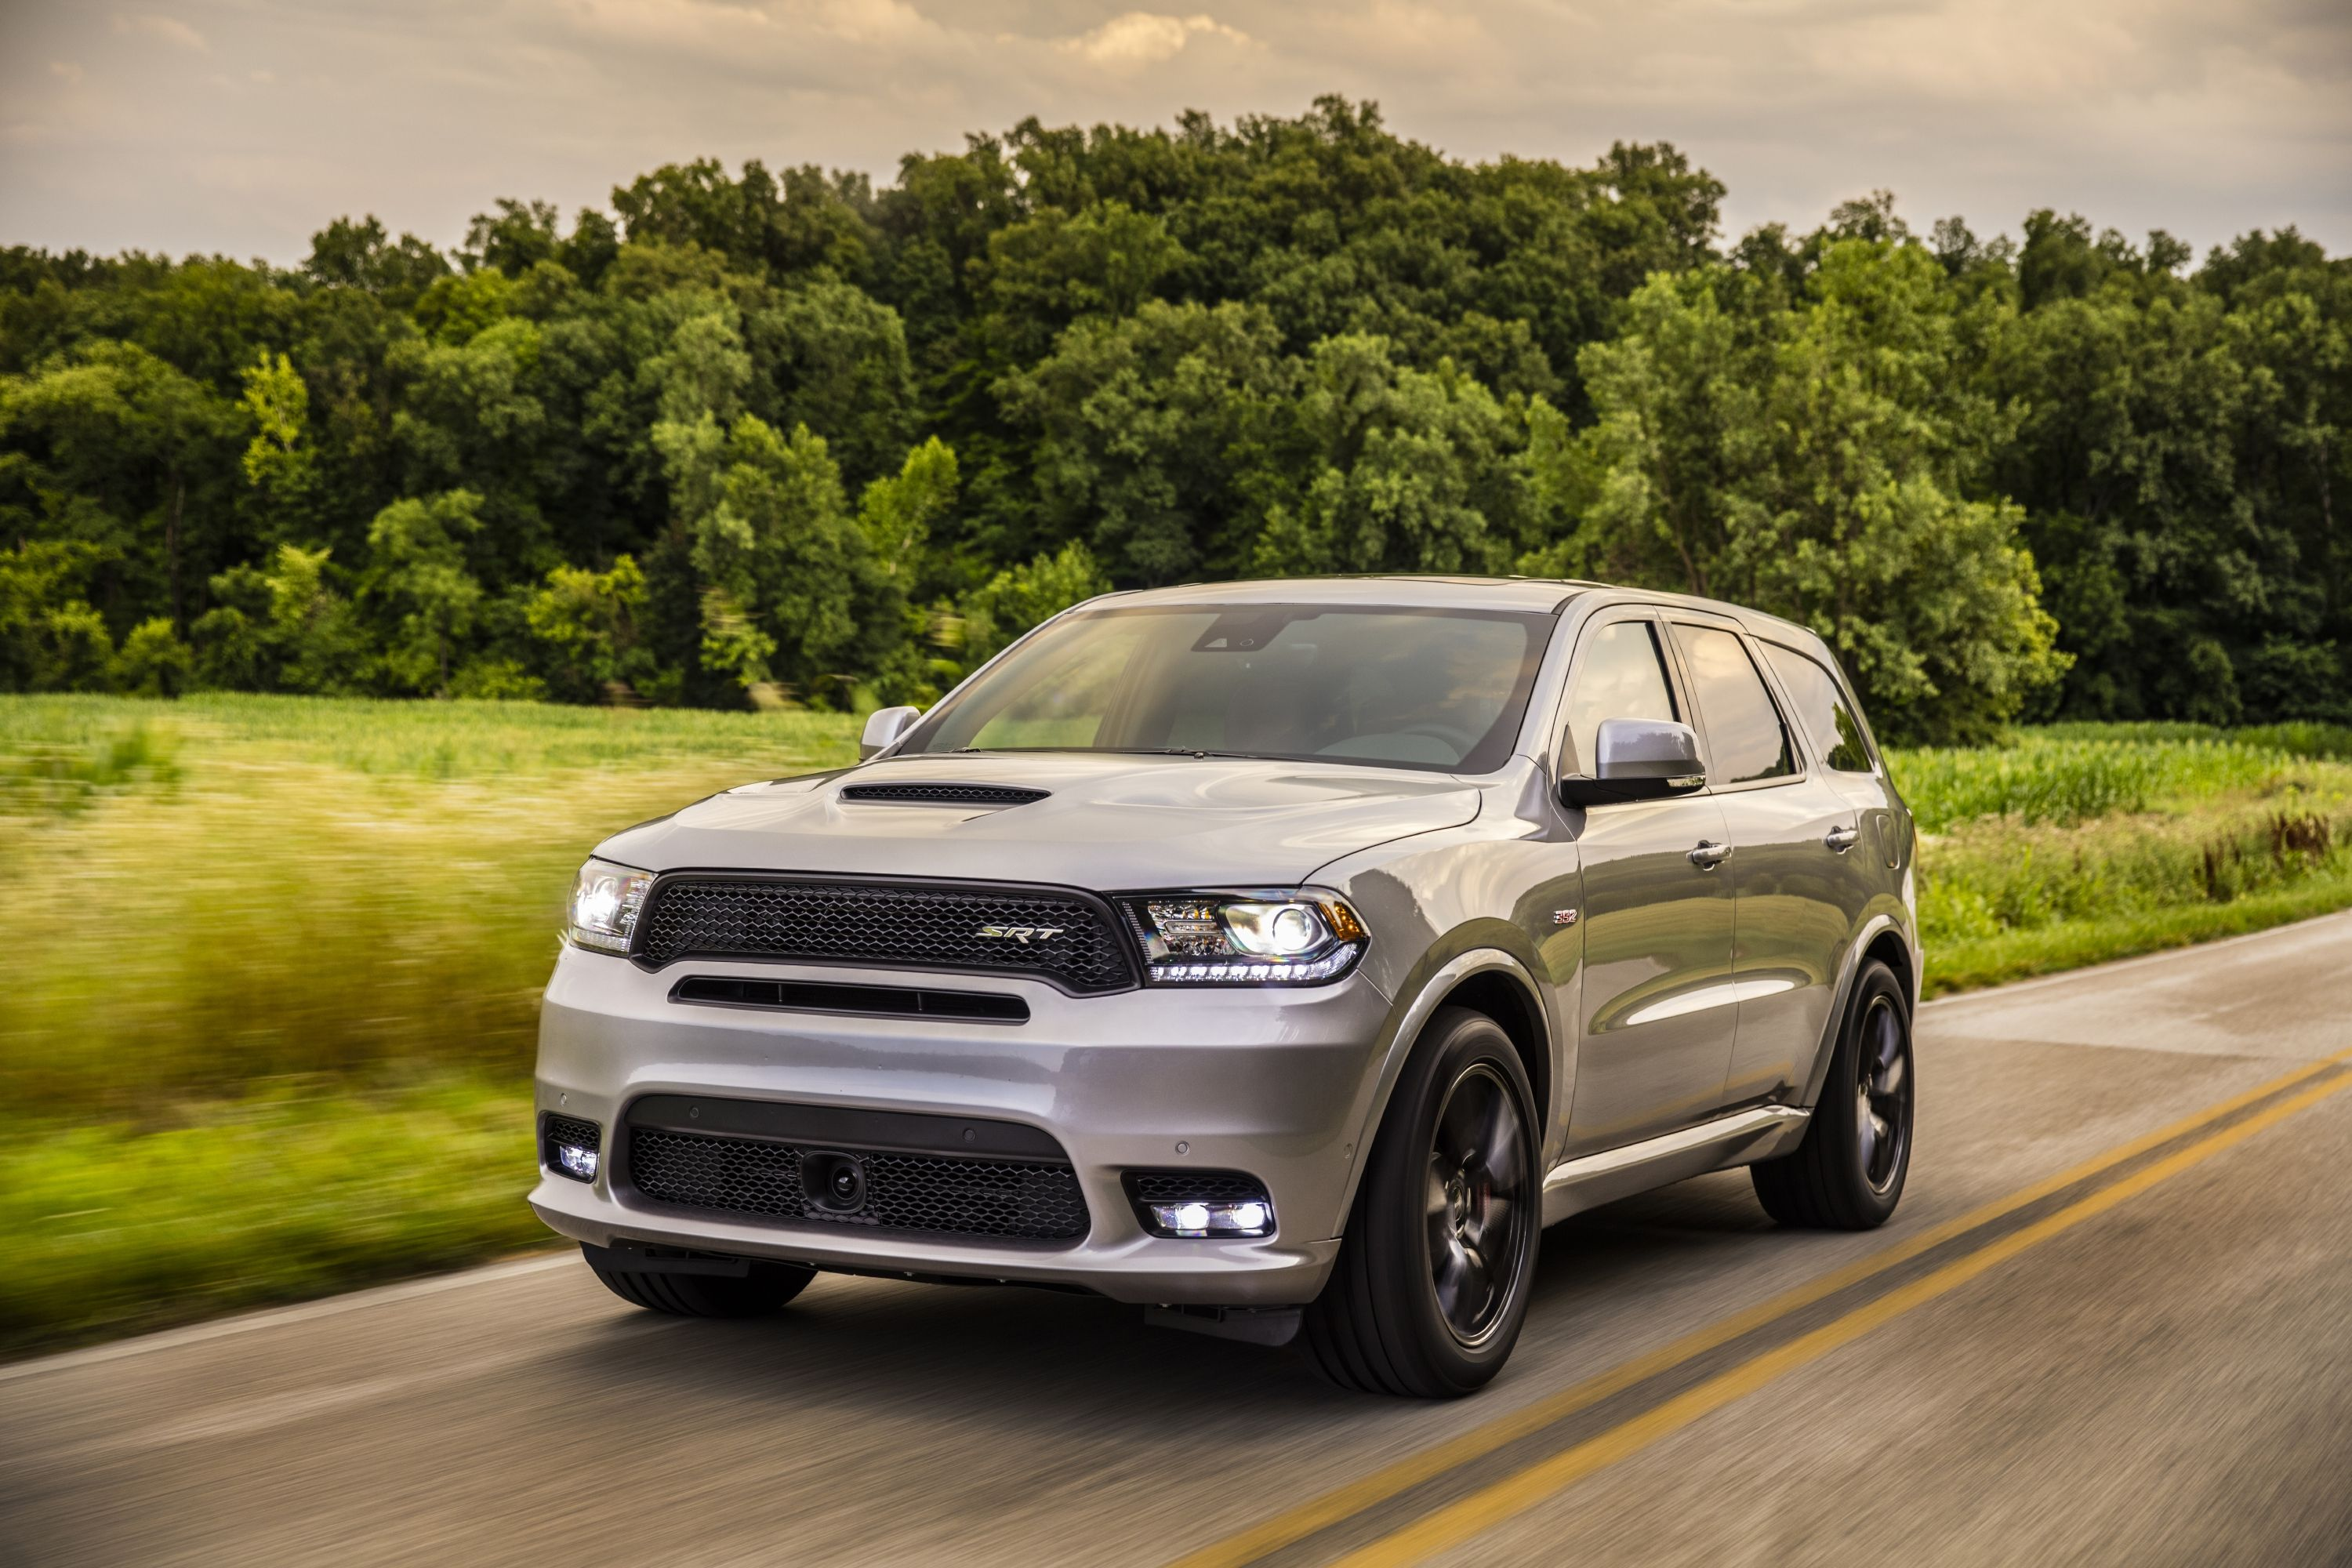 2020 Dodge Durango Redesign and Review